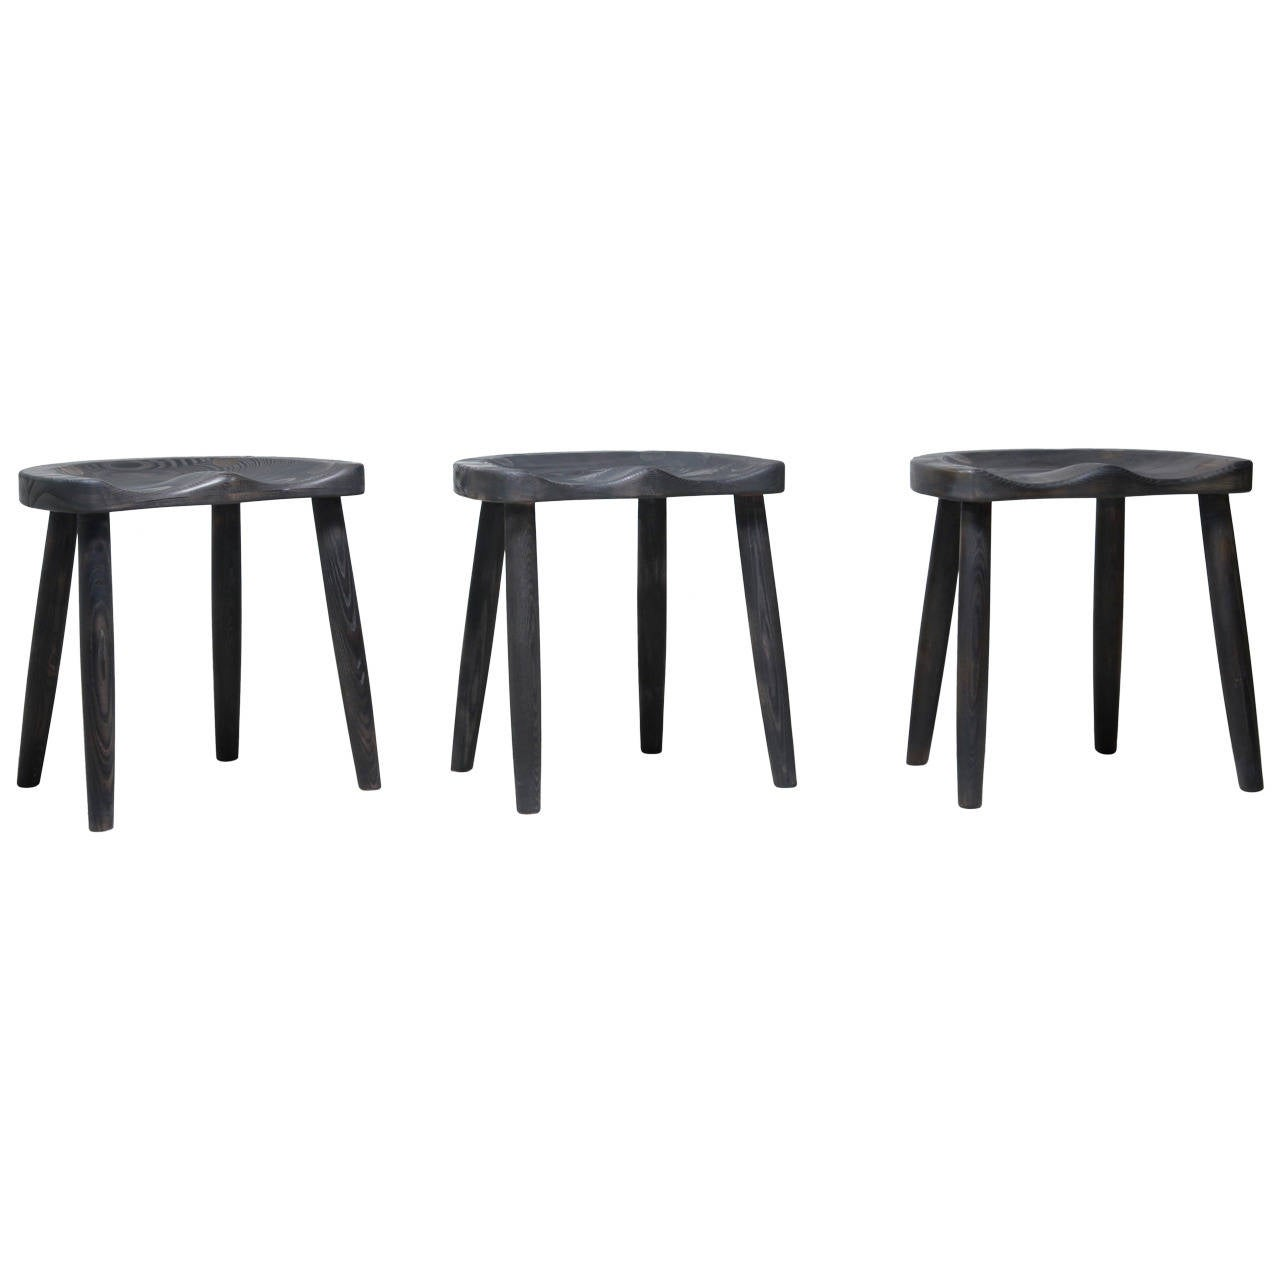 Studio Stools in Blackened Wood by Robert Roakes, USA, 1970s